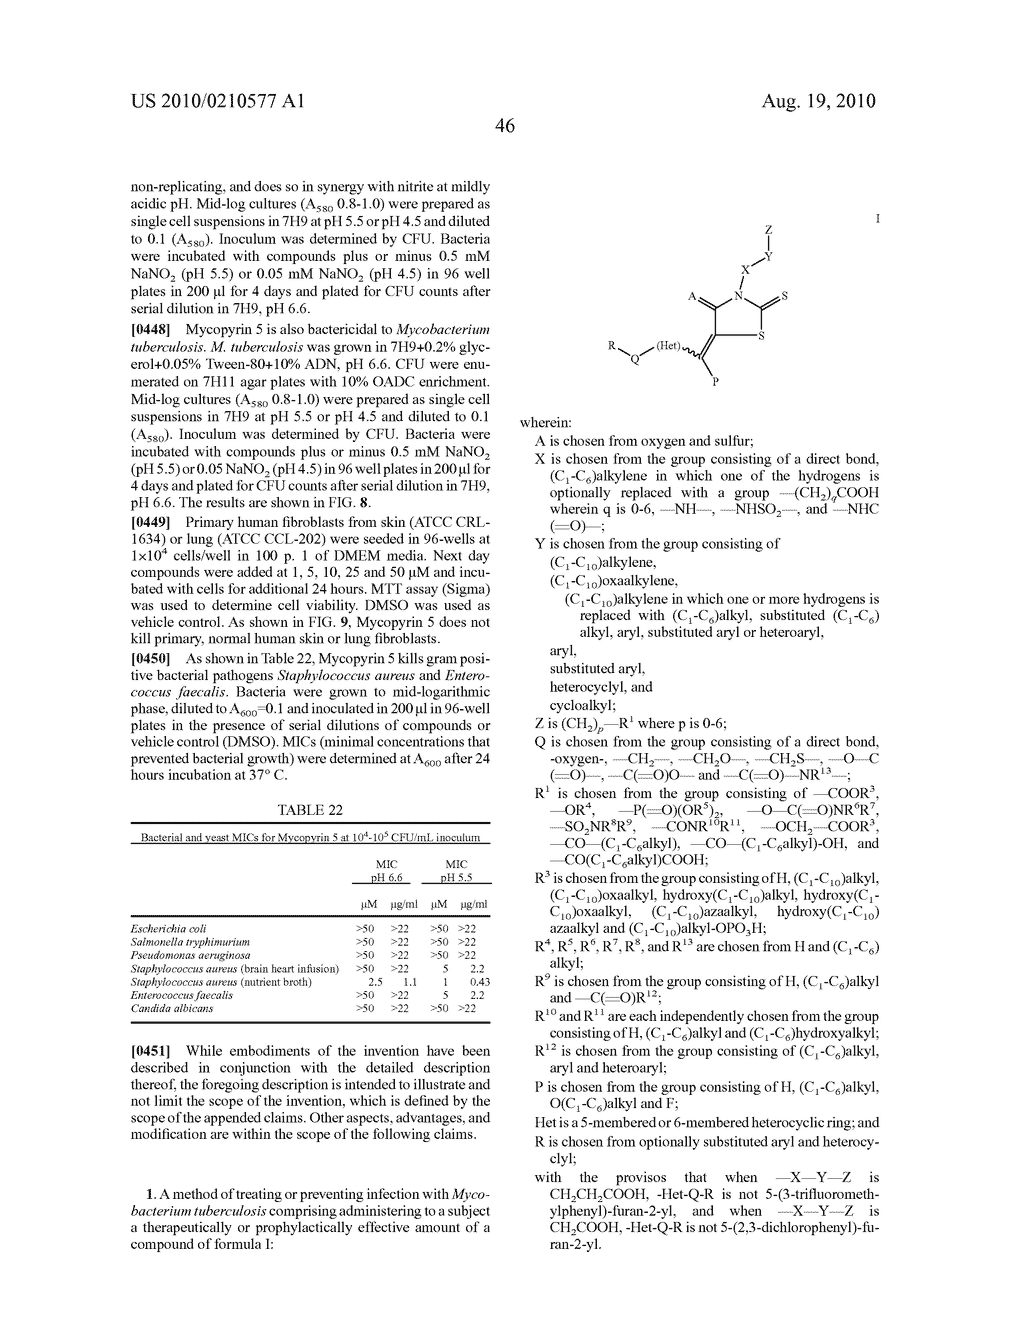 CYCLIC CARBOXYLIC ACID RHODANINE DERIVATIVES FOR THE TREATMENT AND PREVENTION OF TUBERCULOSIS - diagram, schematic, and image 56